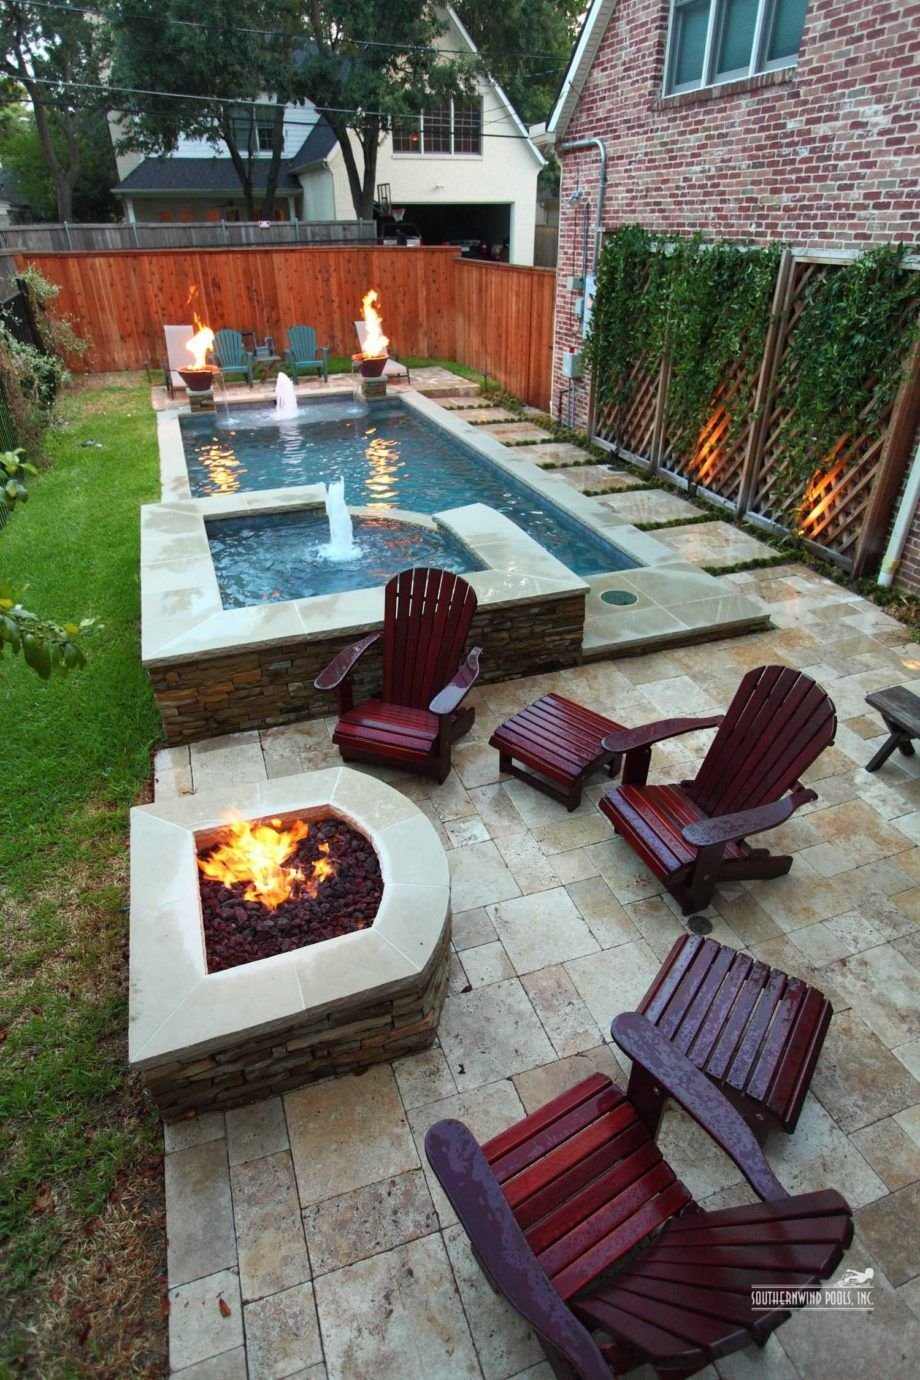 Inground Pool With Fire Pit : inground, Outdoors:, Small, Inground, Pools, Yards, Including, Narrow, Firepit, Great, Spaces, Co…, Backyard, Pools,, Backyard,, Landscaping